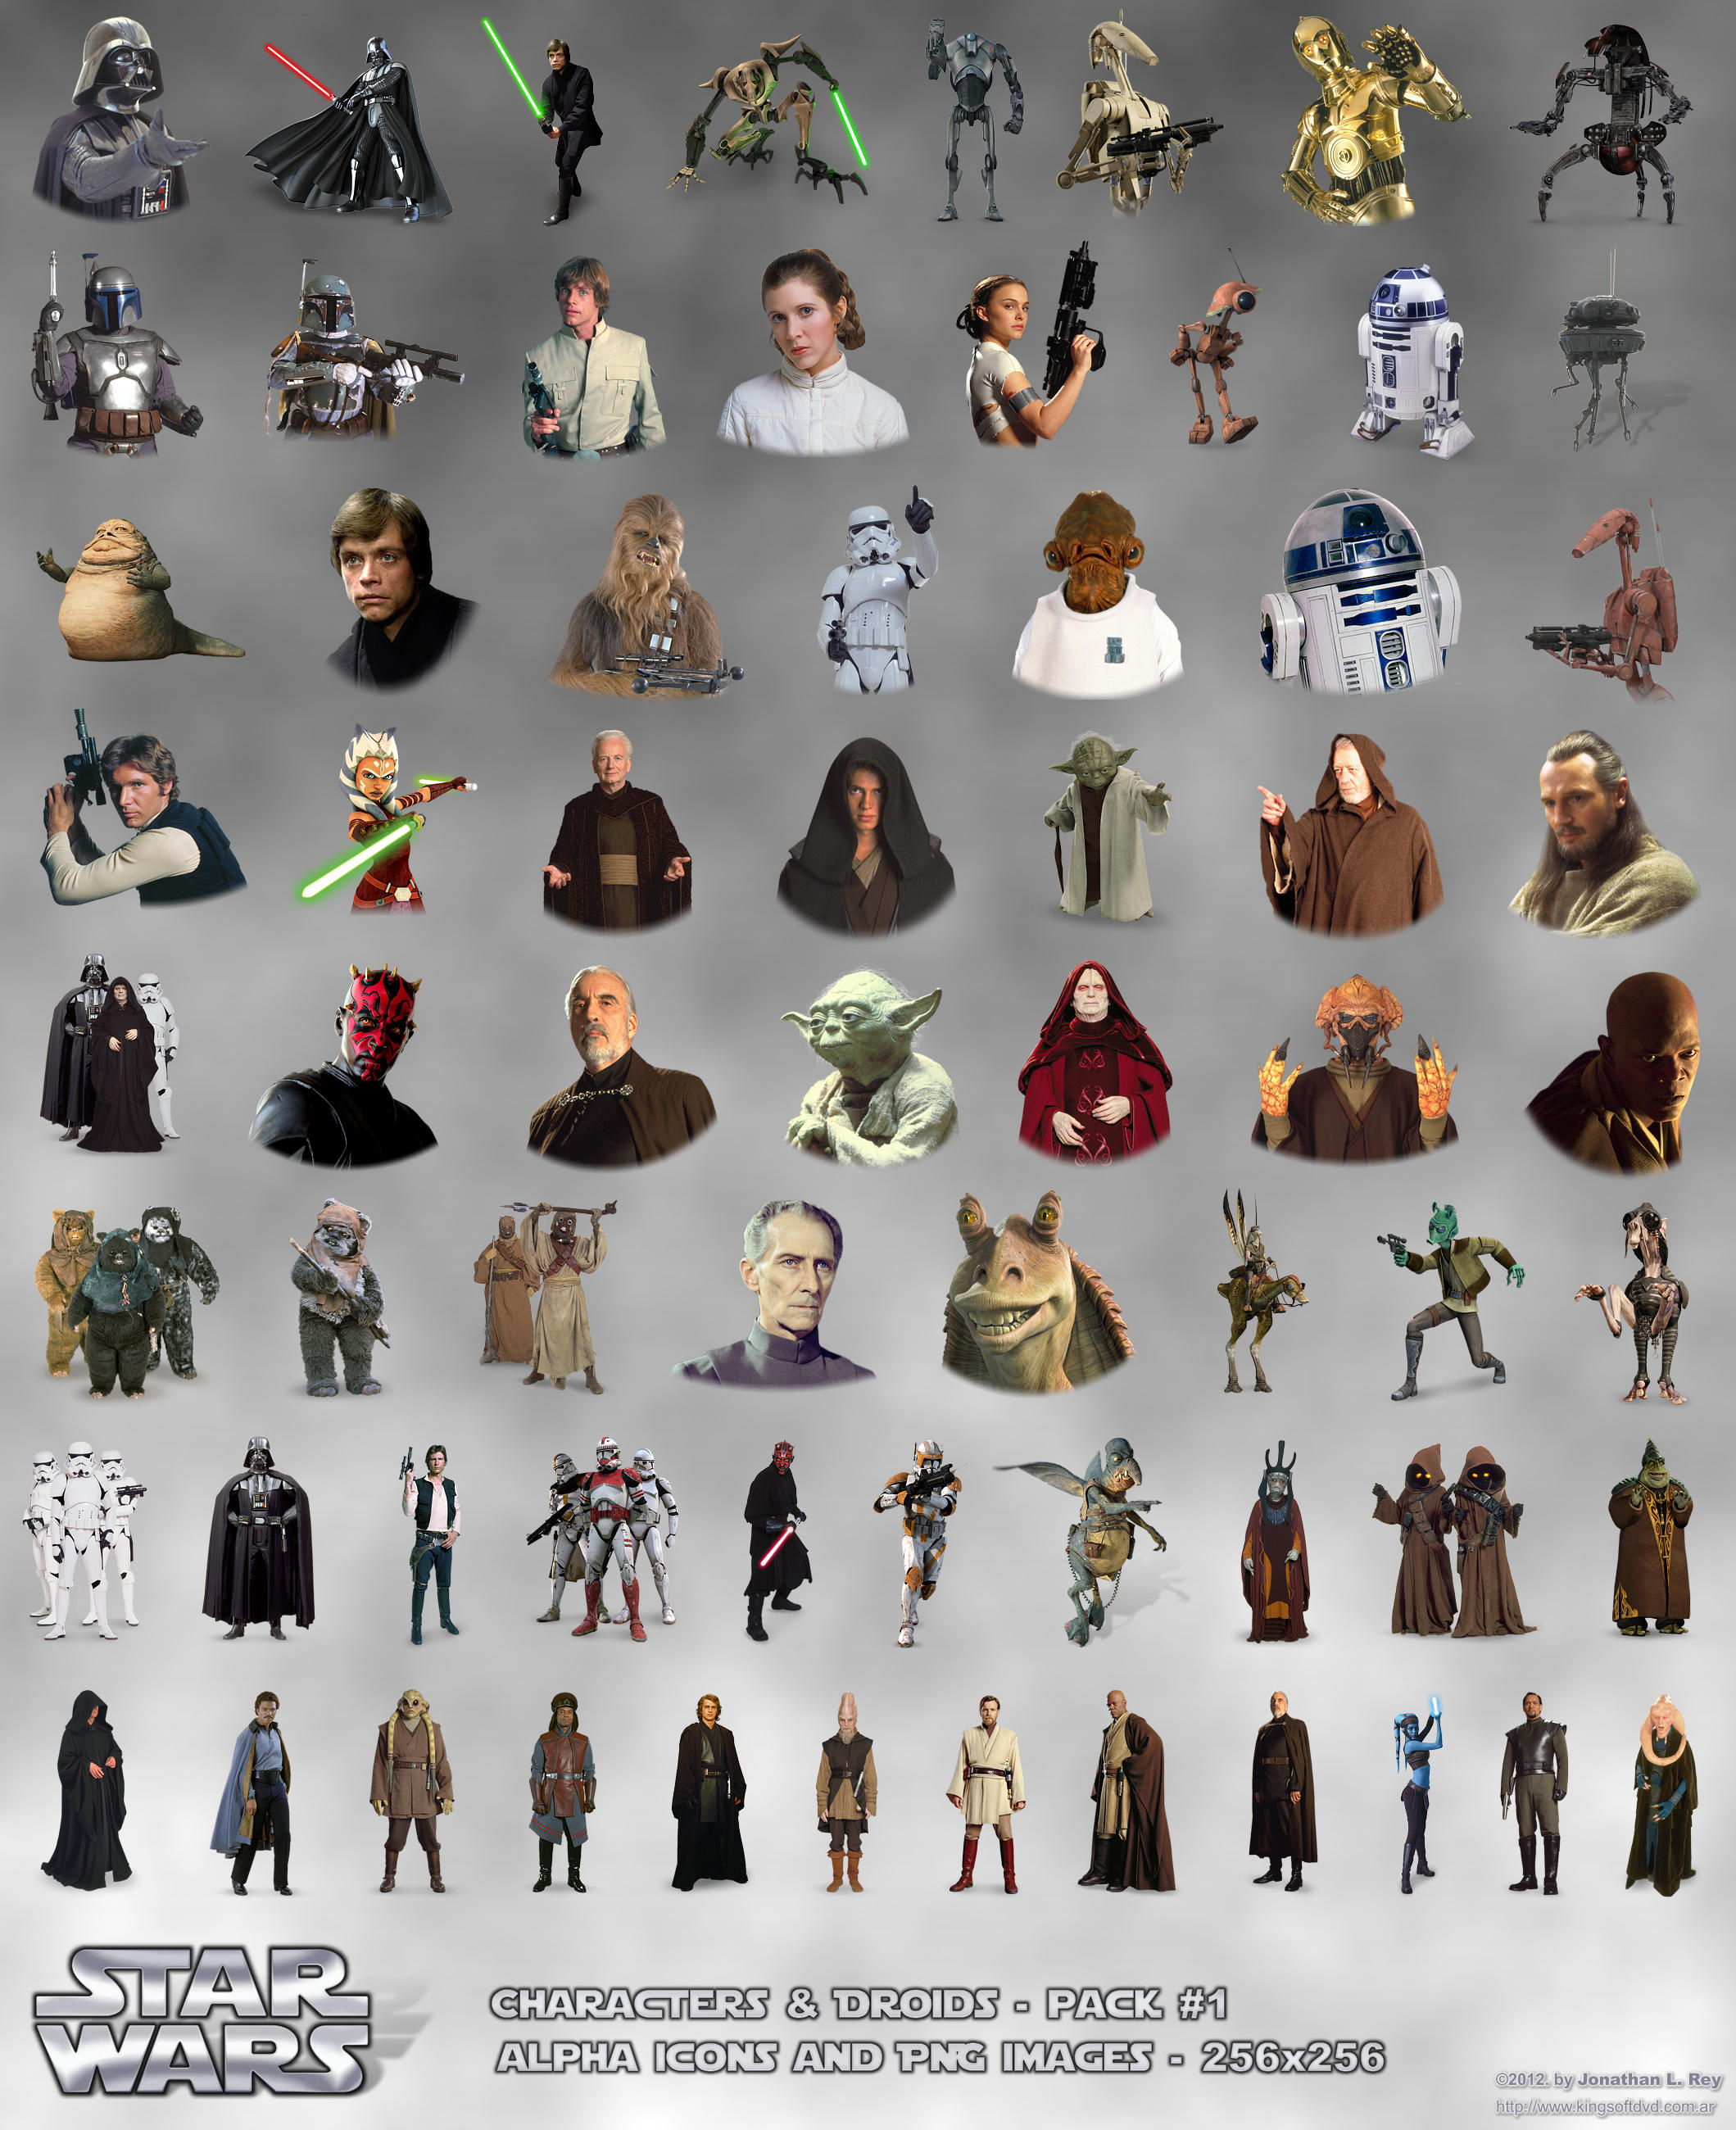 STAR WARS Characters and Droids Alpha Icons PNG by jonathanrey